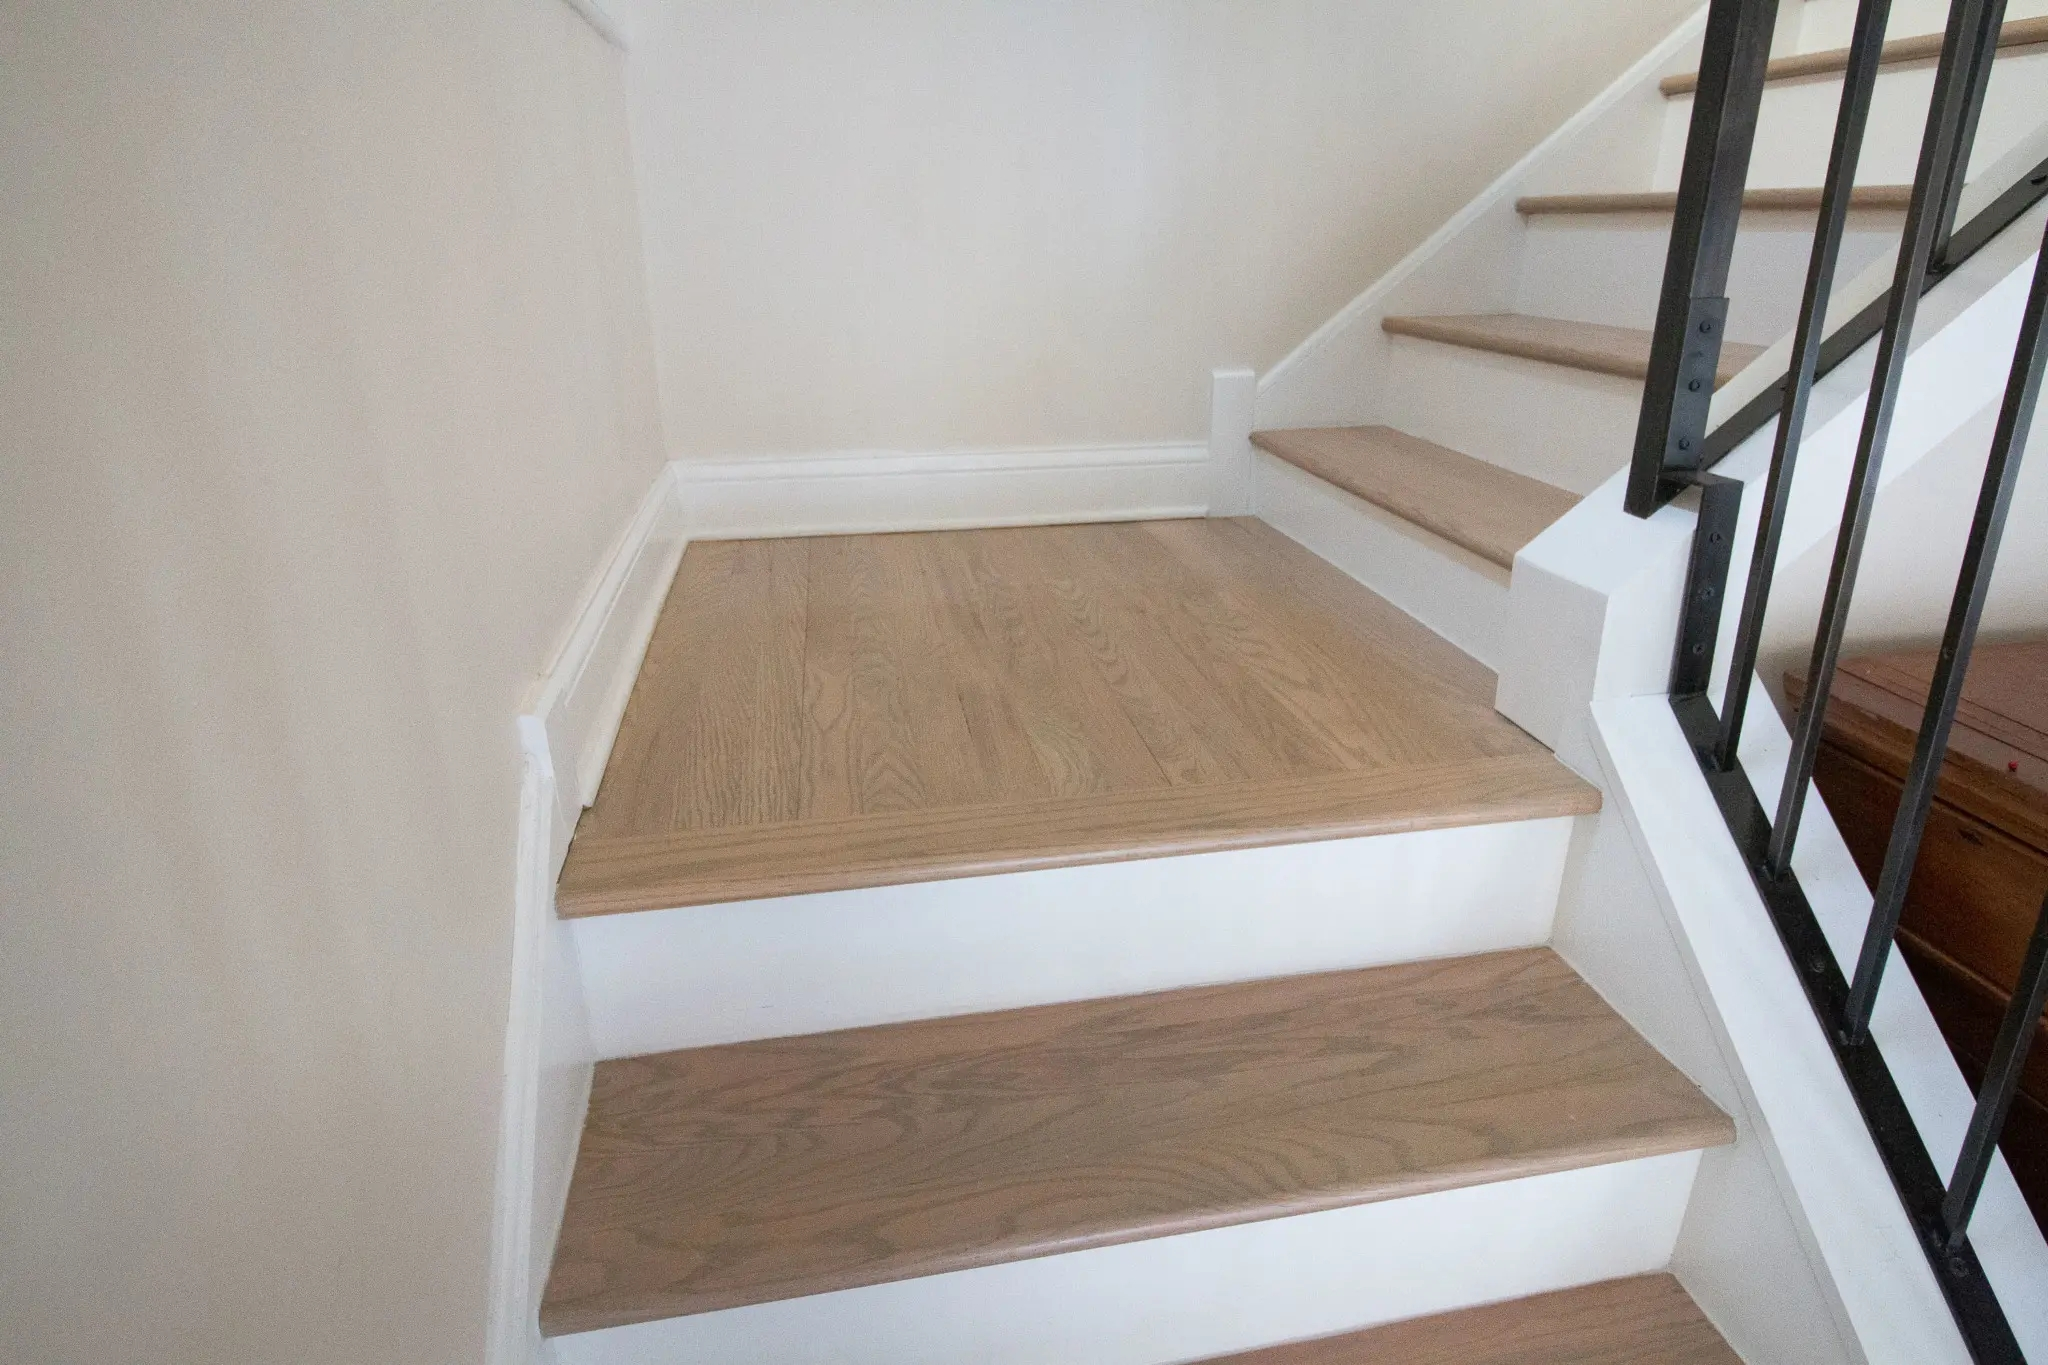 How To Install A Stair Runner On Hardwoods The Diy Playbook   Runners On Stairs With Landings   Roger Oates   French Tuck   Annie Selke   Before And After   Runners Up